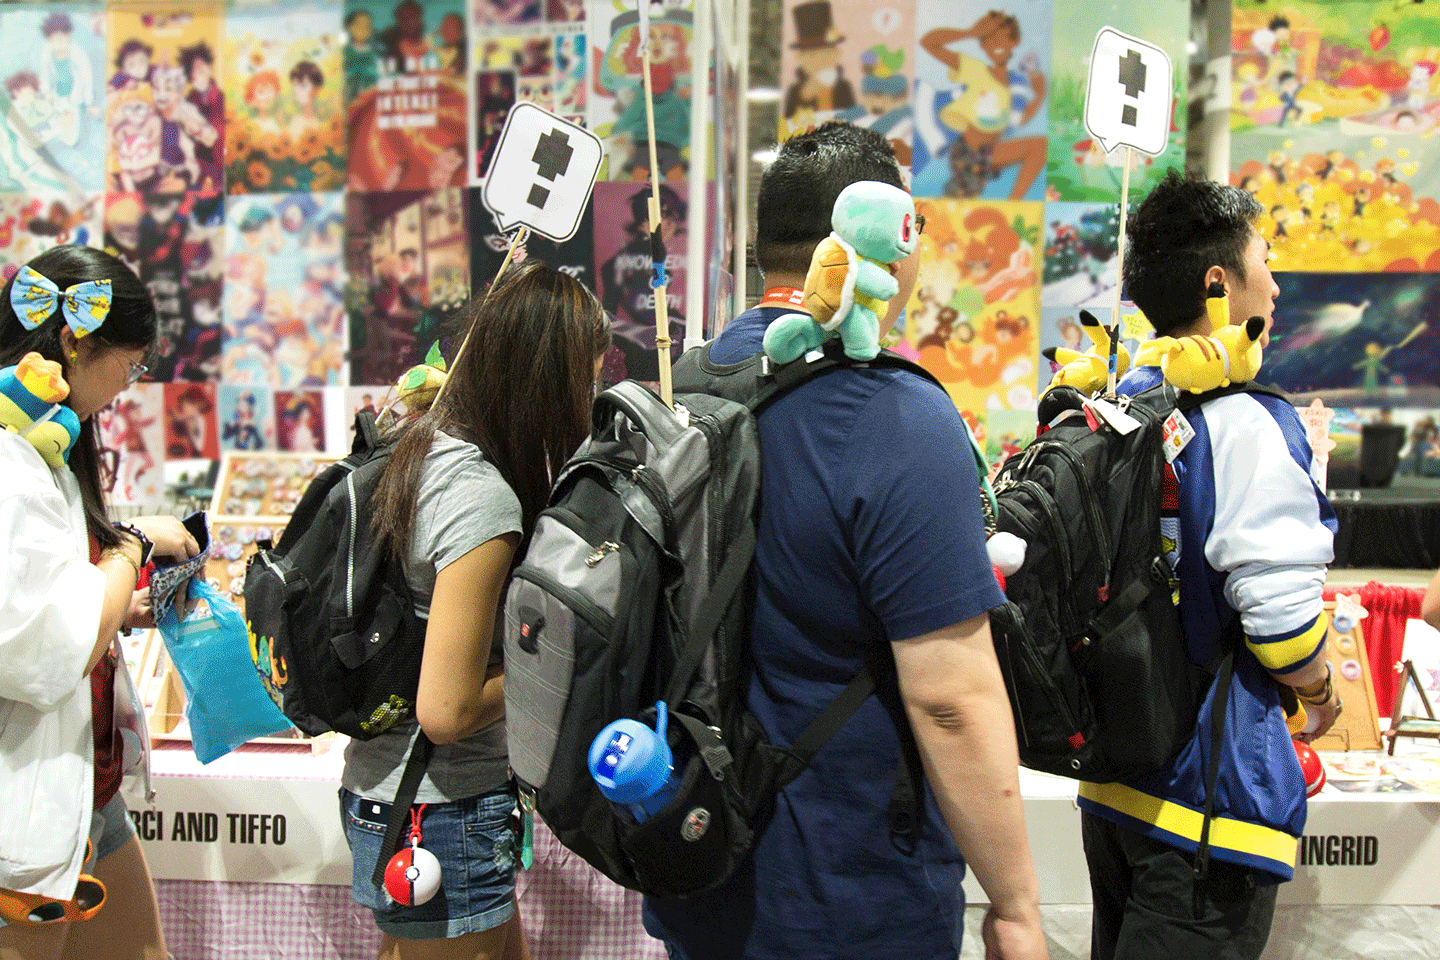 Anime Expo Stands : Anime expo artist alley pass los angeles anime convention